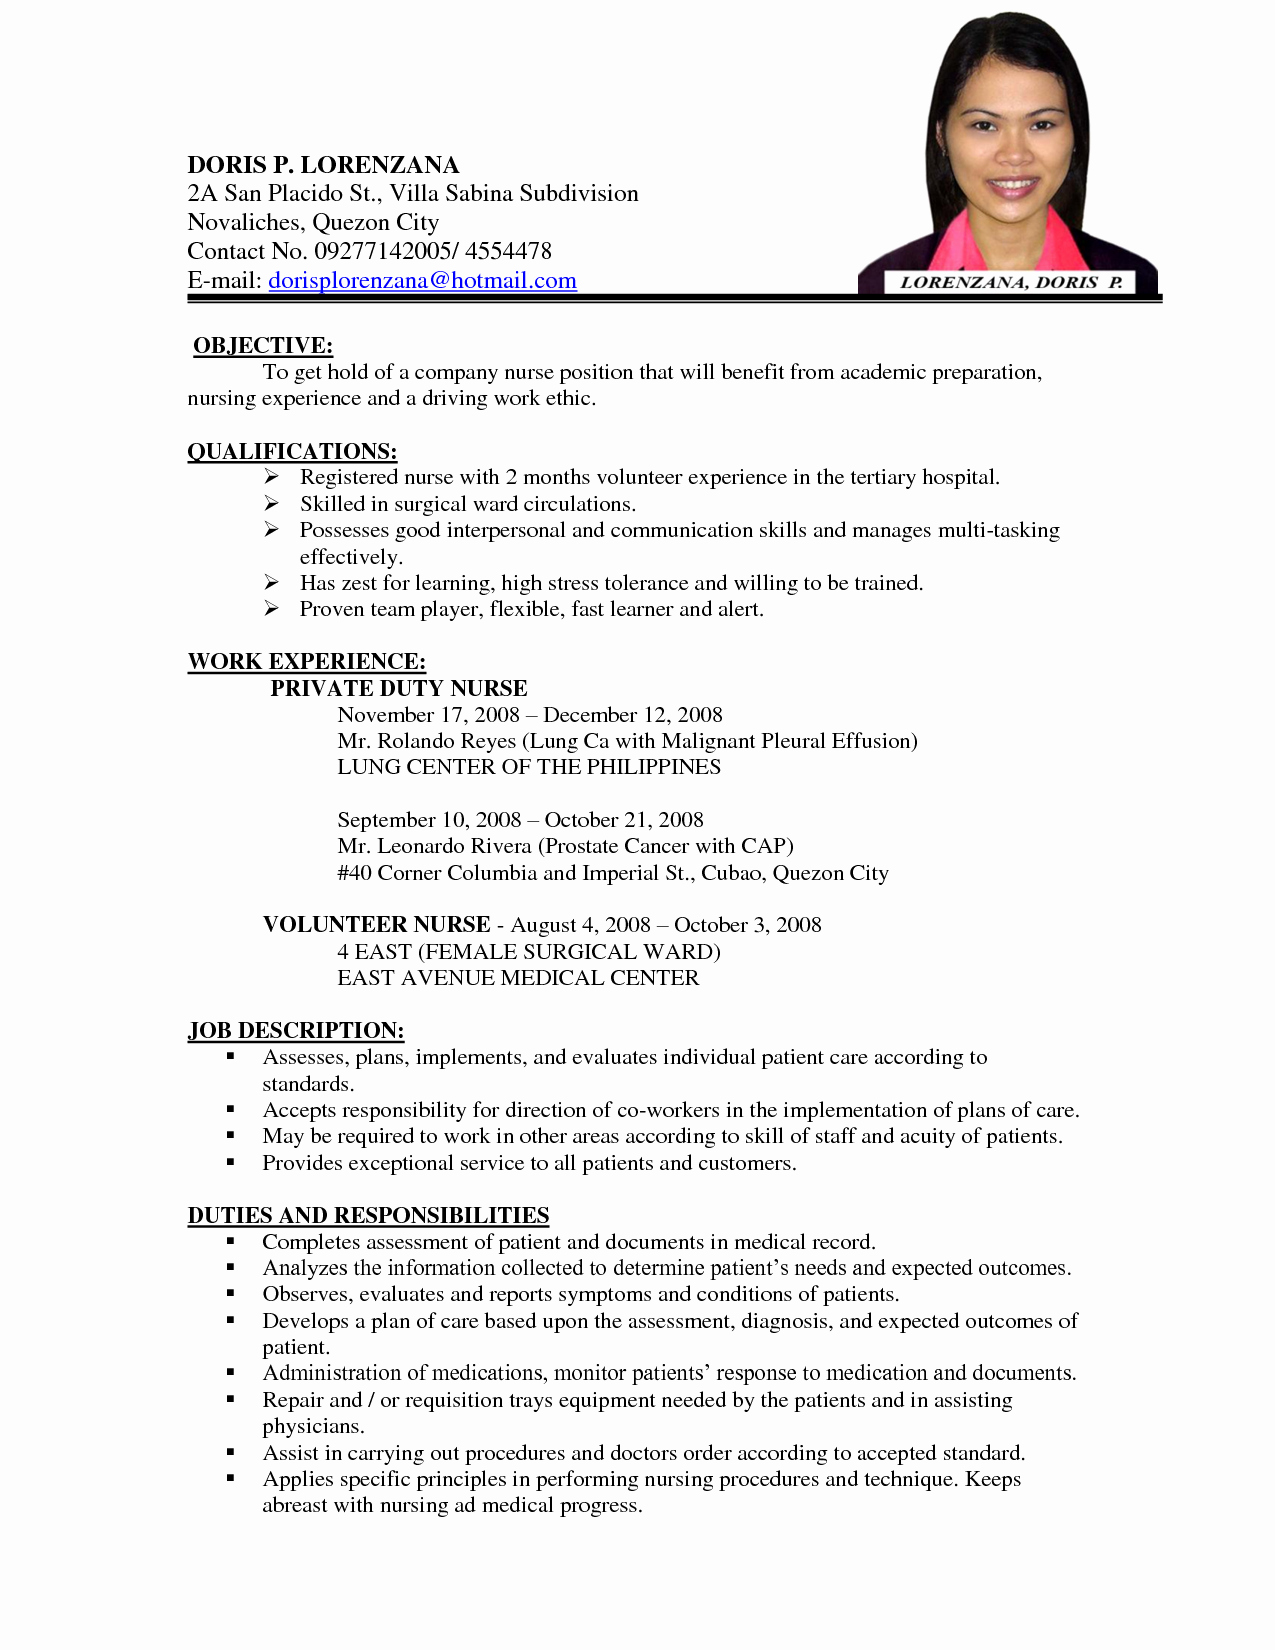 Nursing Curriculum Vitae Examples Google Search